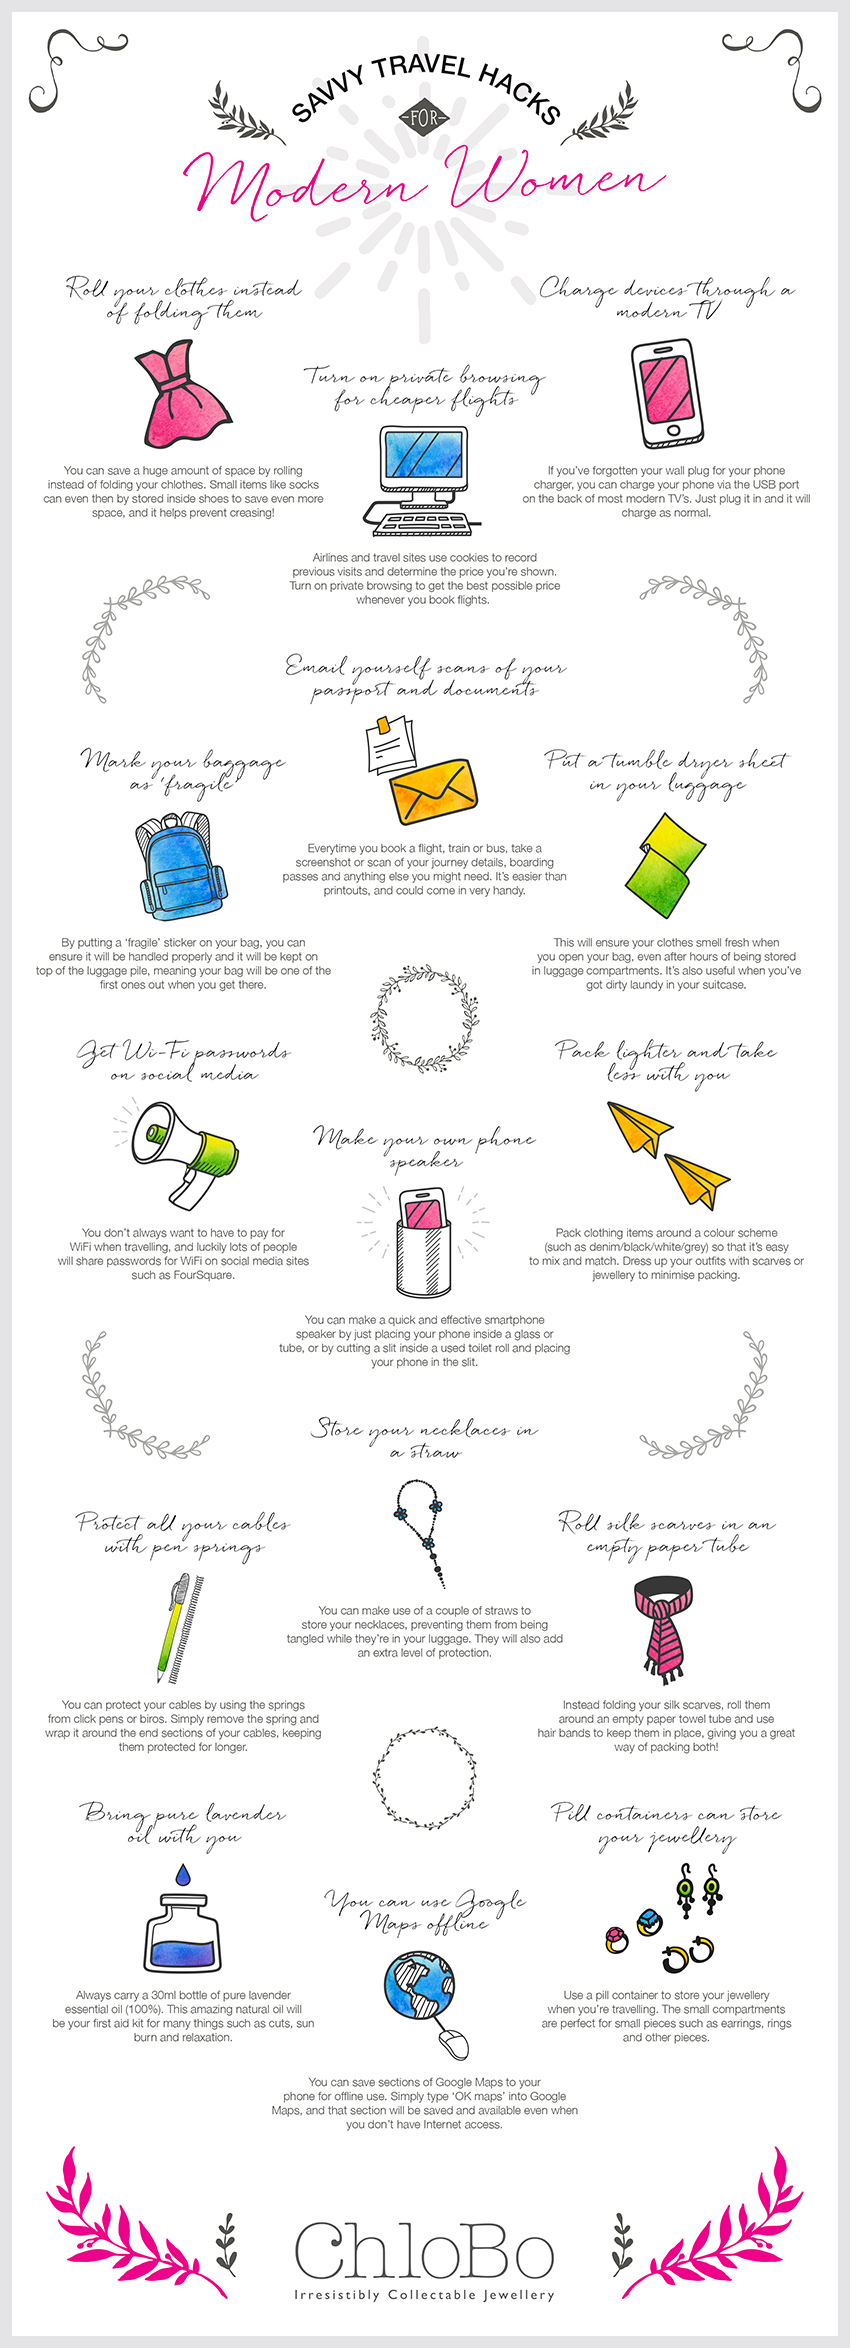 travel-hacks-for-the-modern-woman